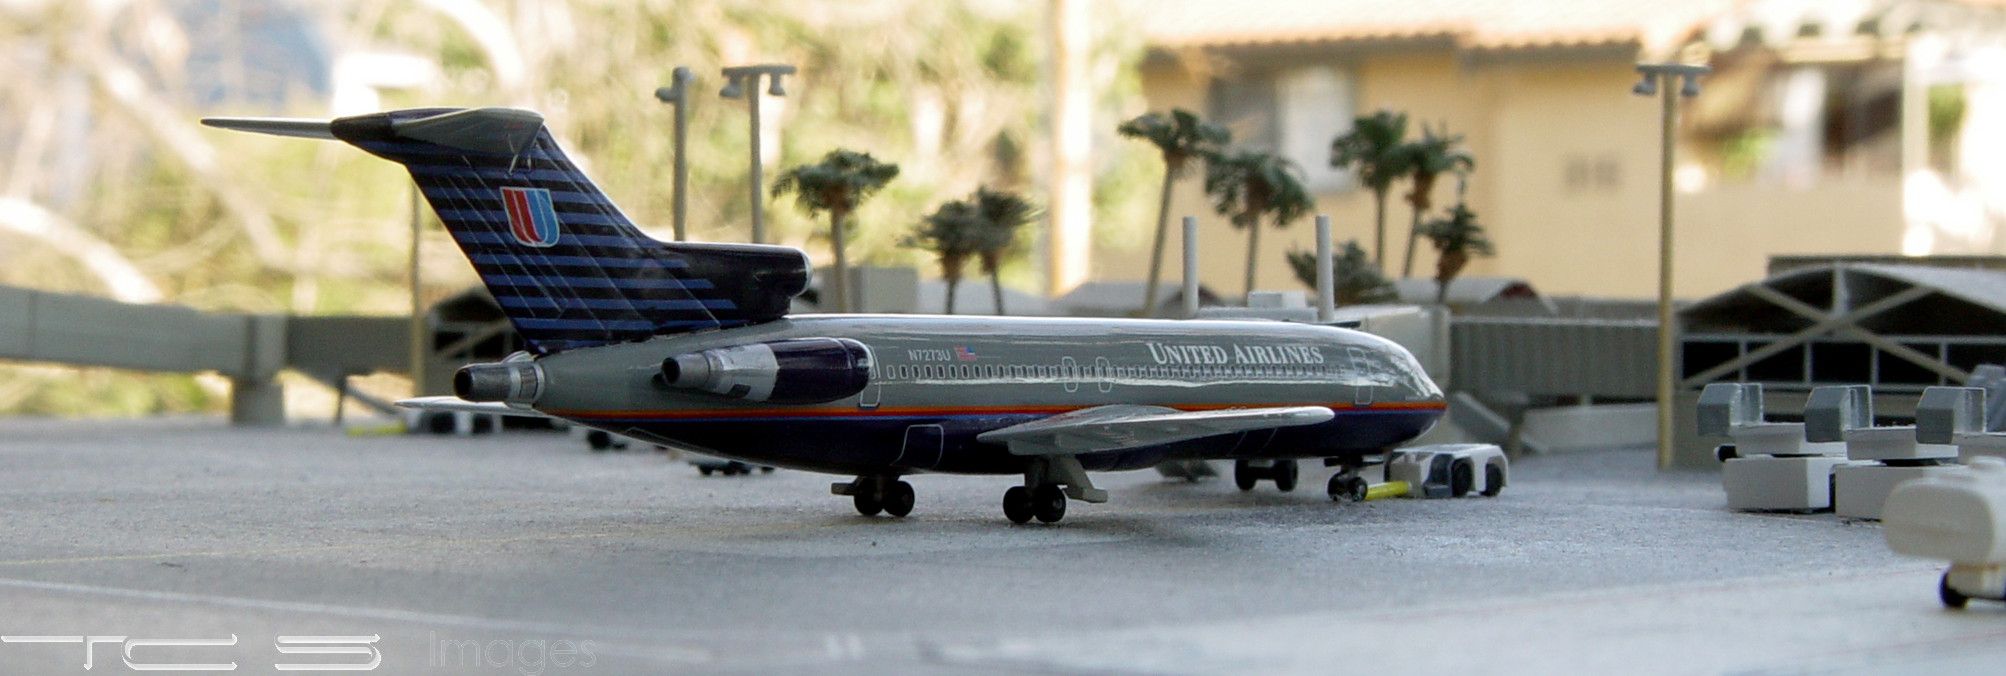 United Airlines 727-222